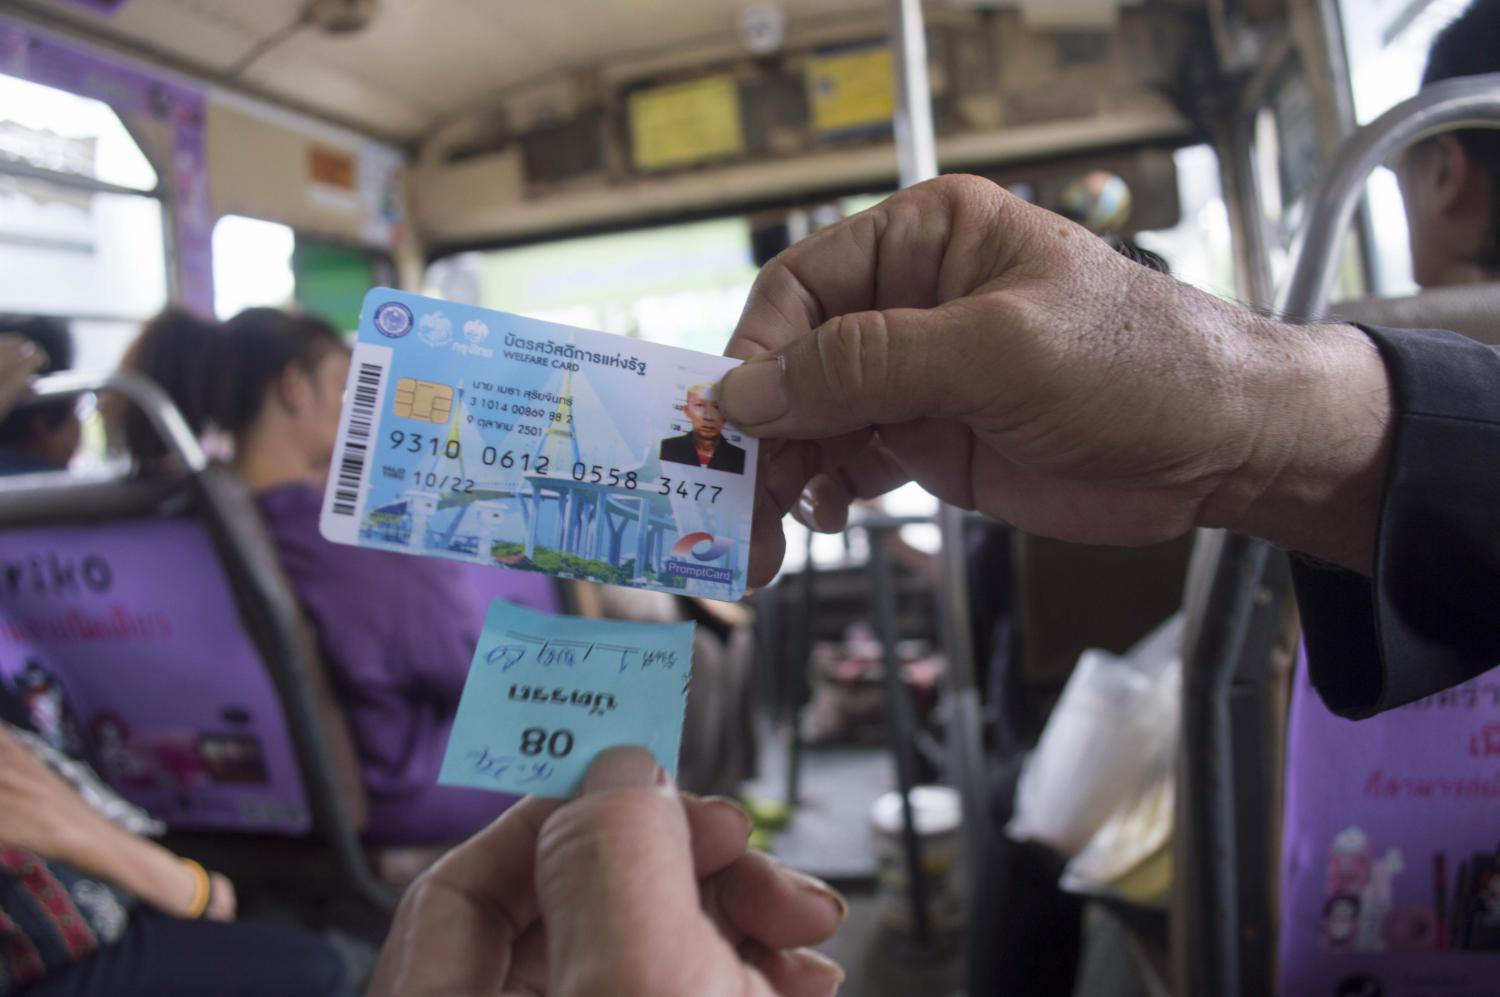 A welfare card holder shows a bus ticket given by a conductor who scanned the card for bus fare. The welfare card is available to Thai nationals aged 18 and up with an annual income of less than 100,000 baht.(Photo by Worrapon Phayakum)